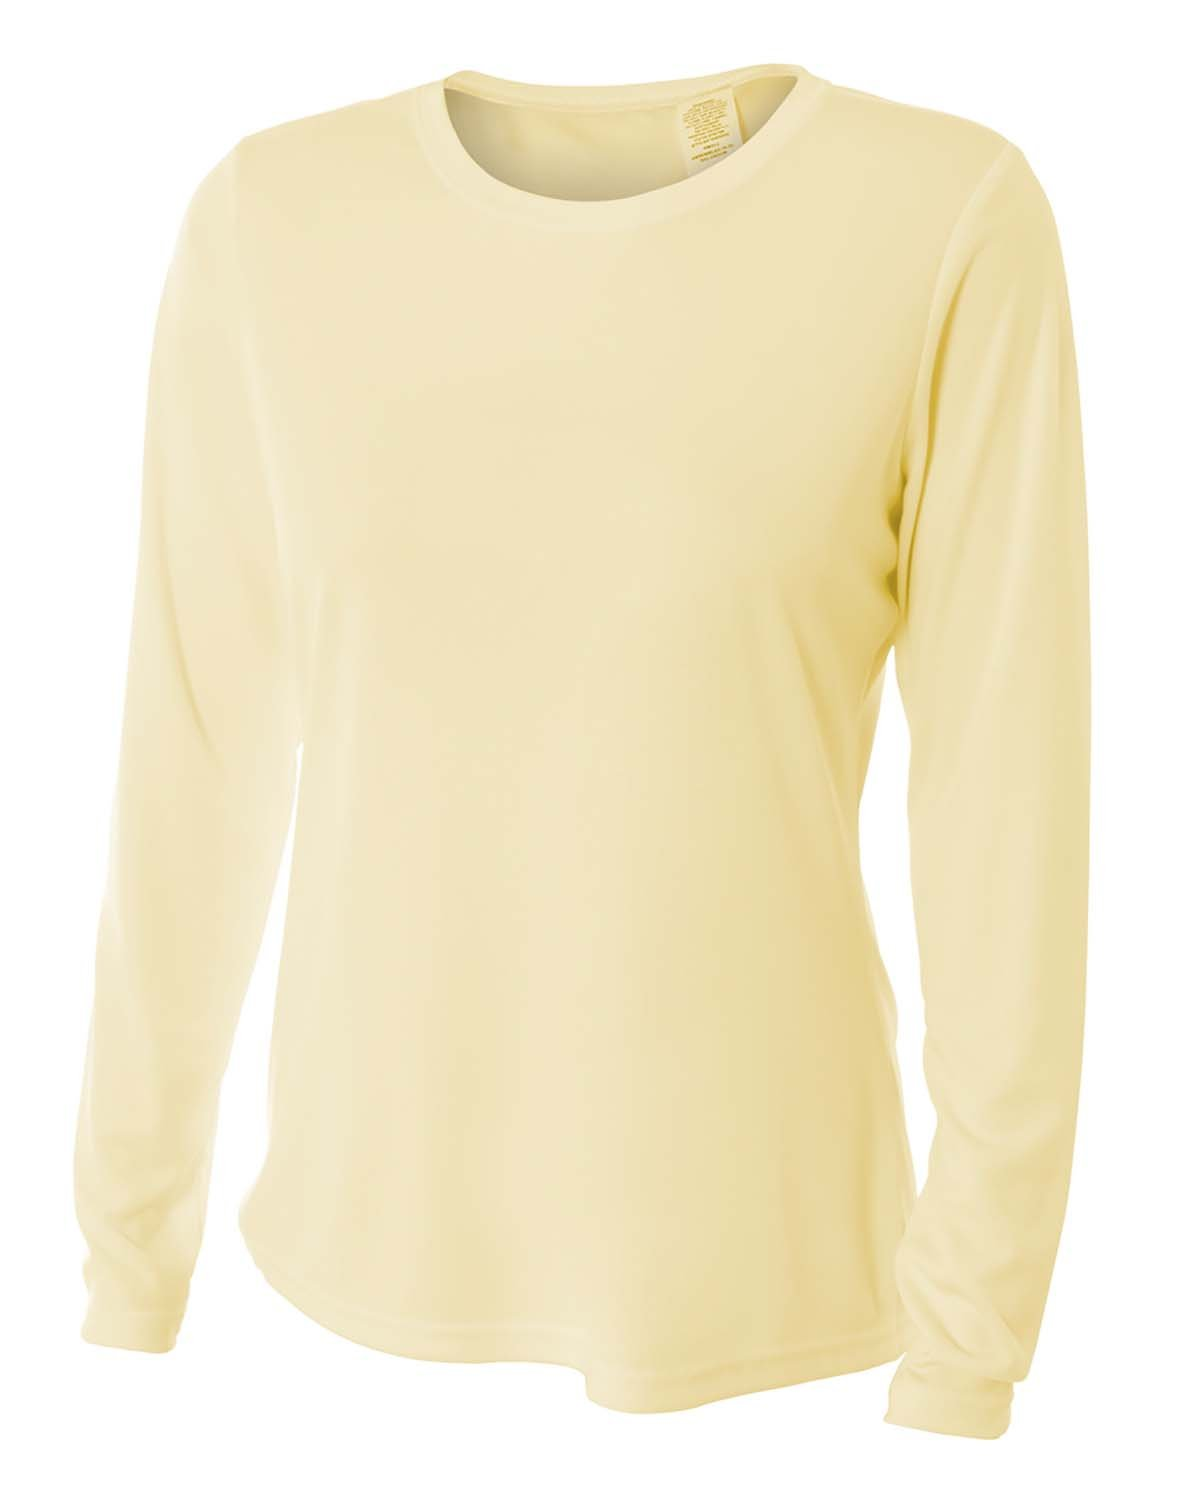 A4 Ladies' Long Sleeve Cooling Performance Crew Shirt LIGHT YELLOW